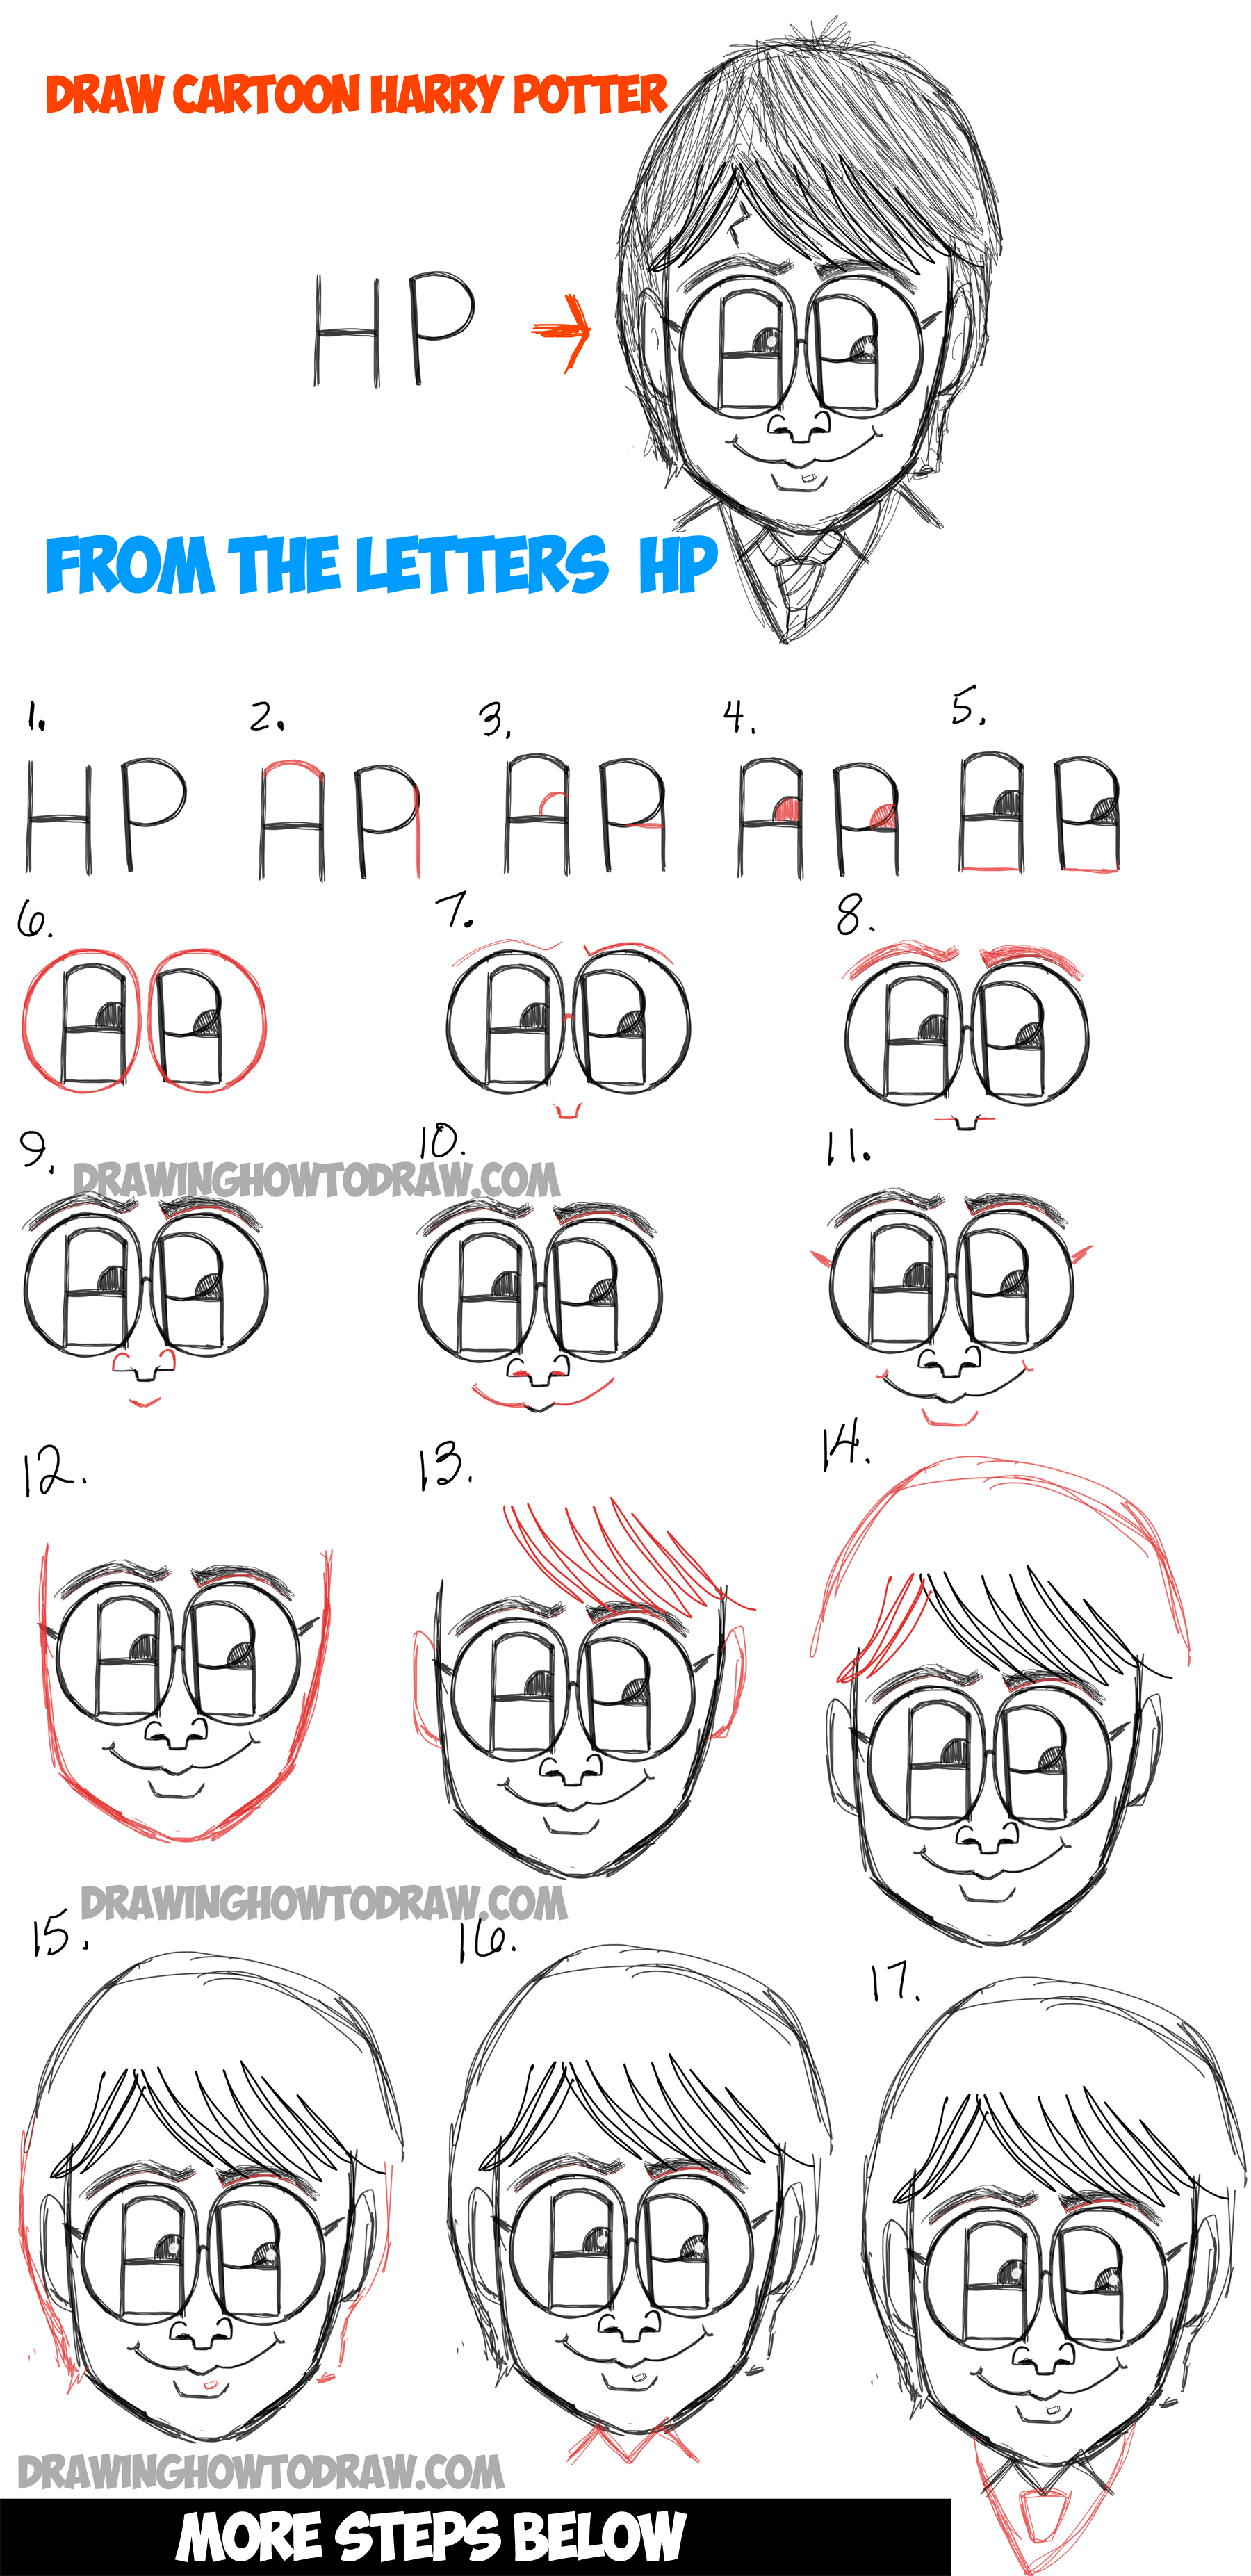 Learn how to draw a cartoon harry potter from HP letters